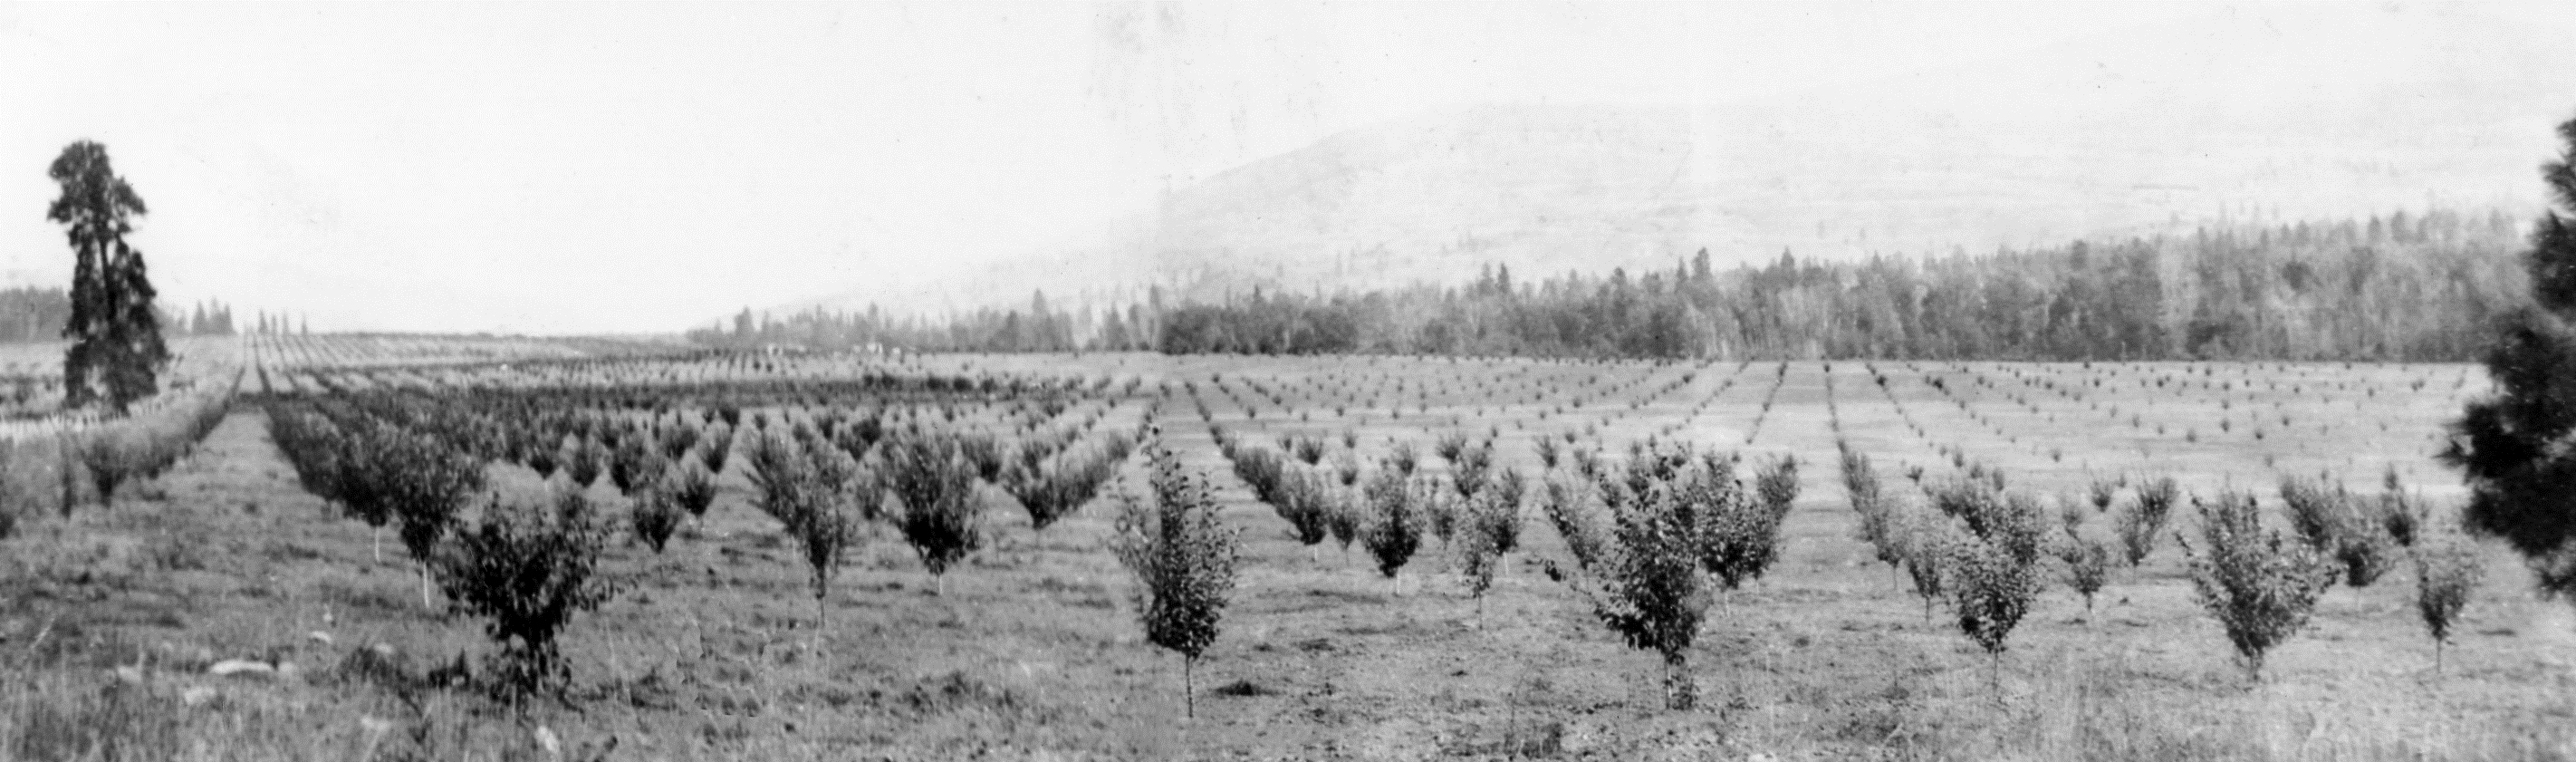 Black and white photo of rows of small, young trees in a large flat field. A forest and hill are in the background.